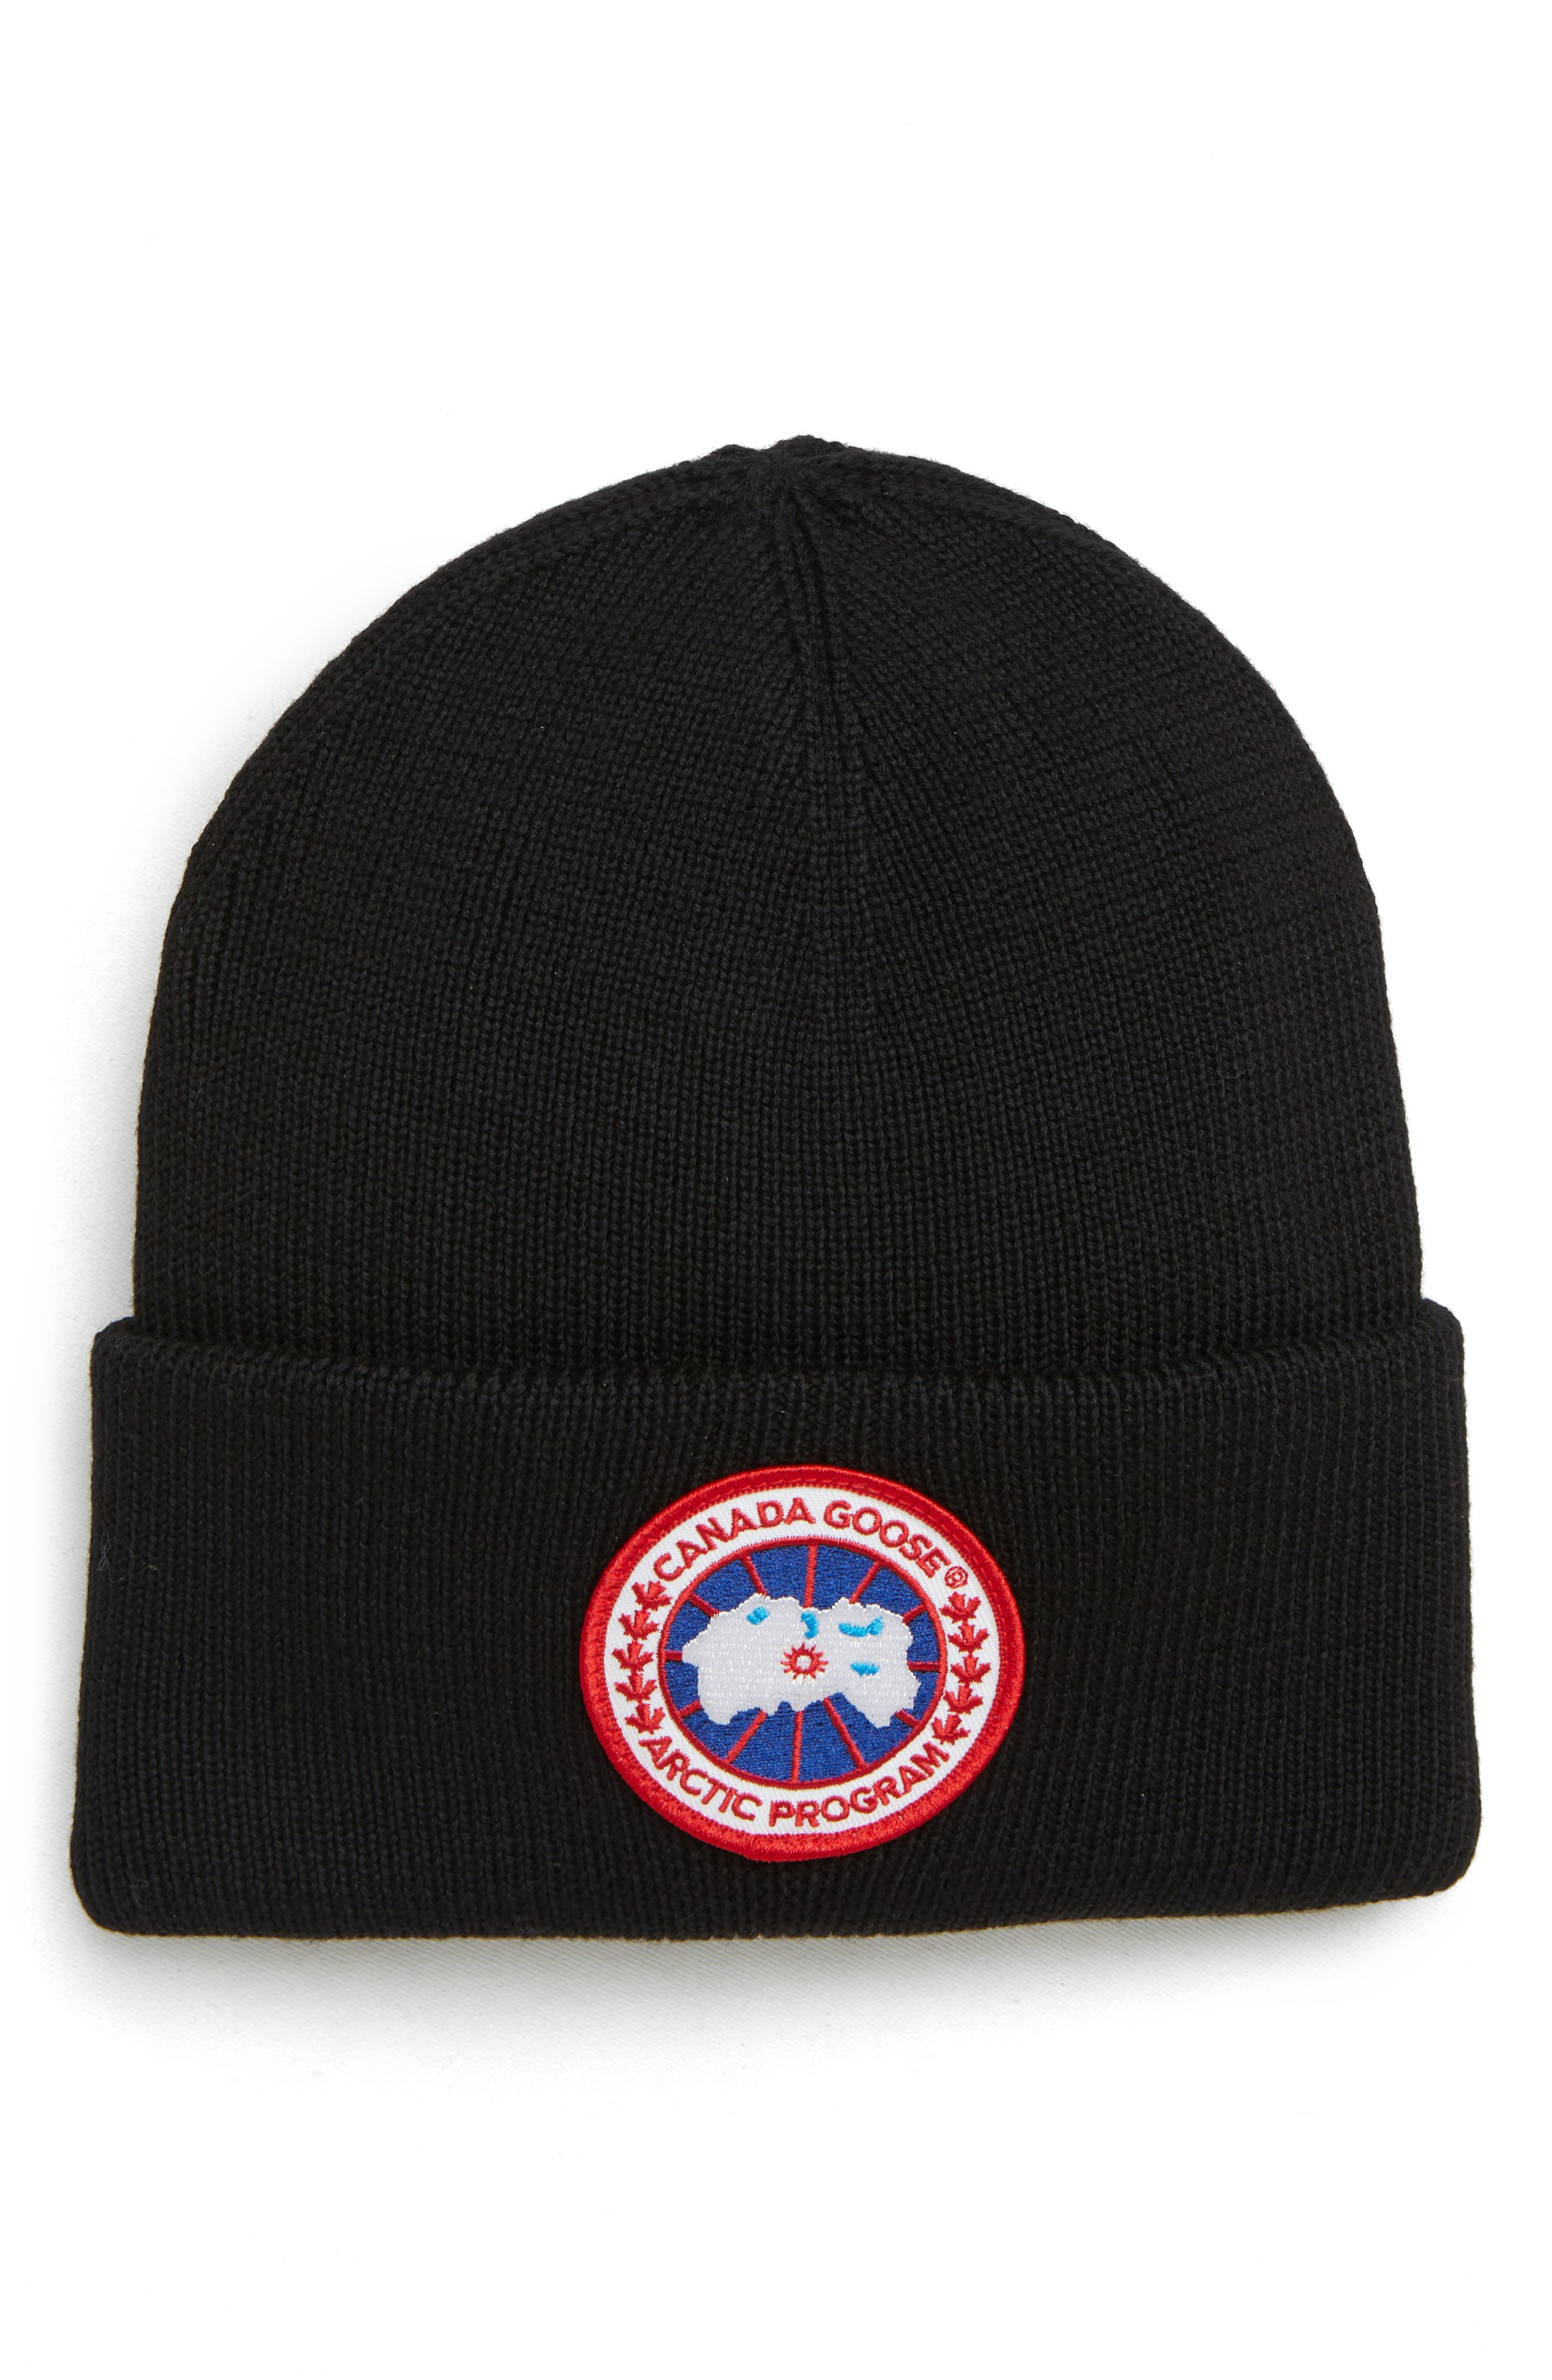 2a7c33fa45c Canada Goose Hats for Women